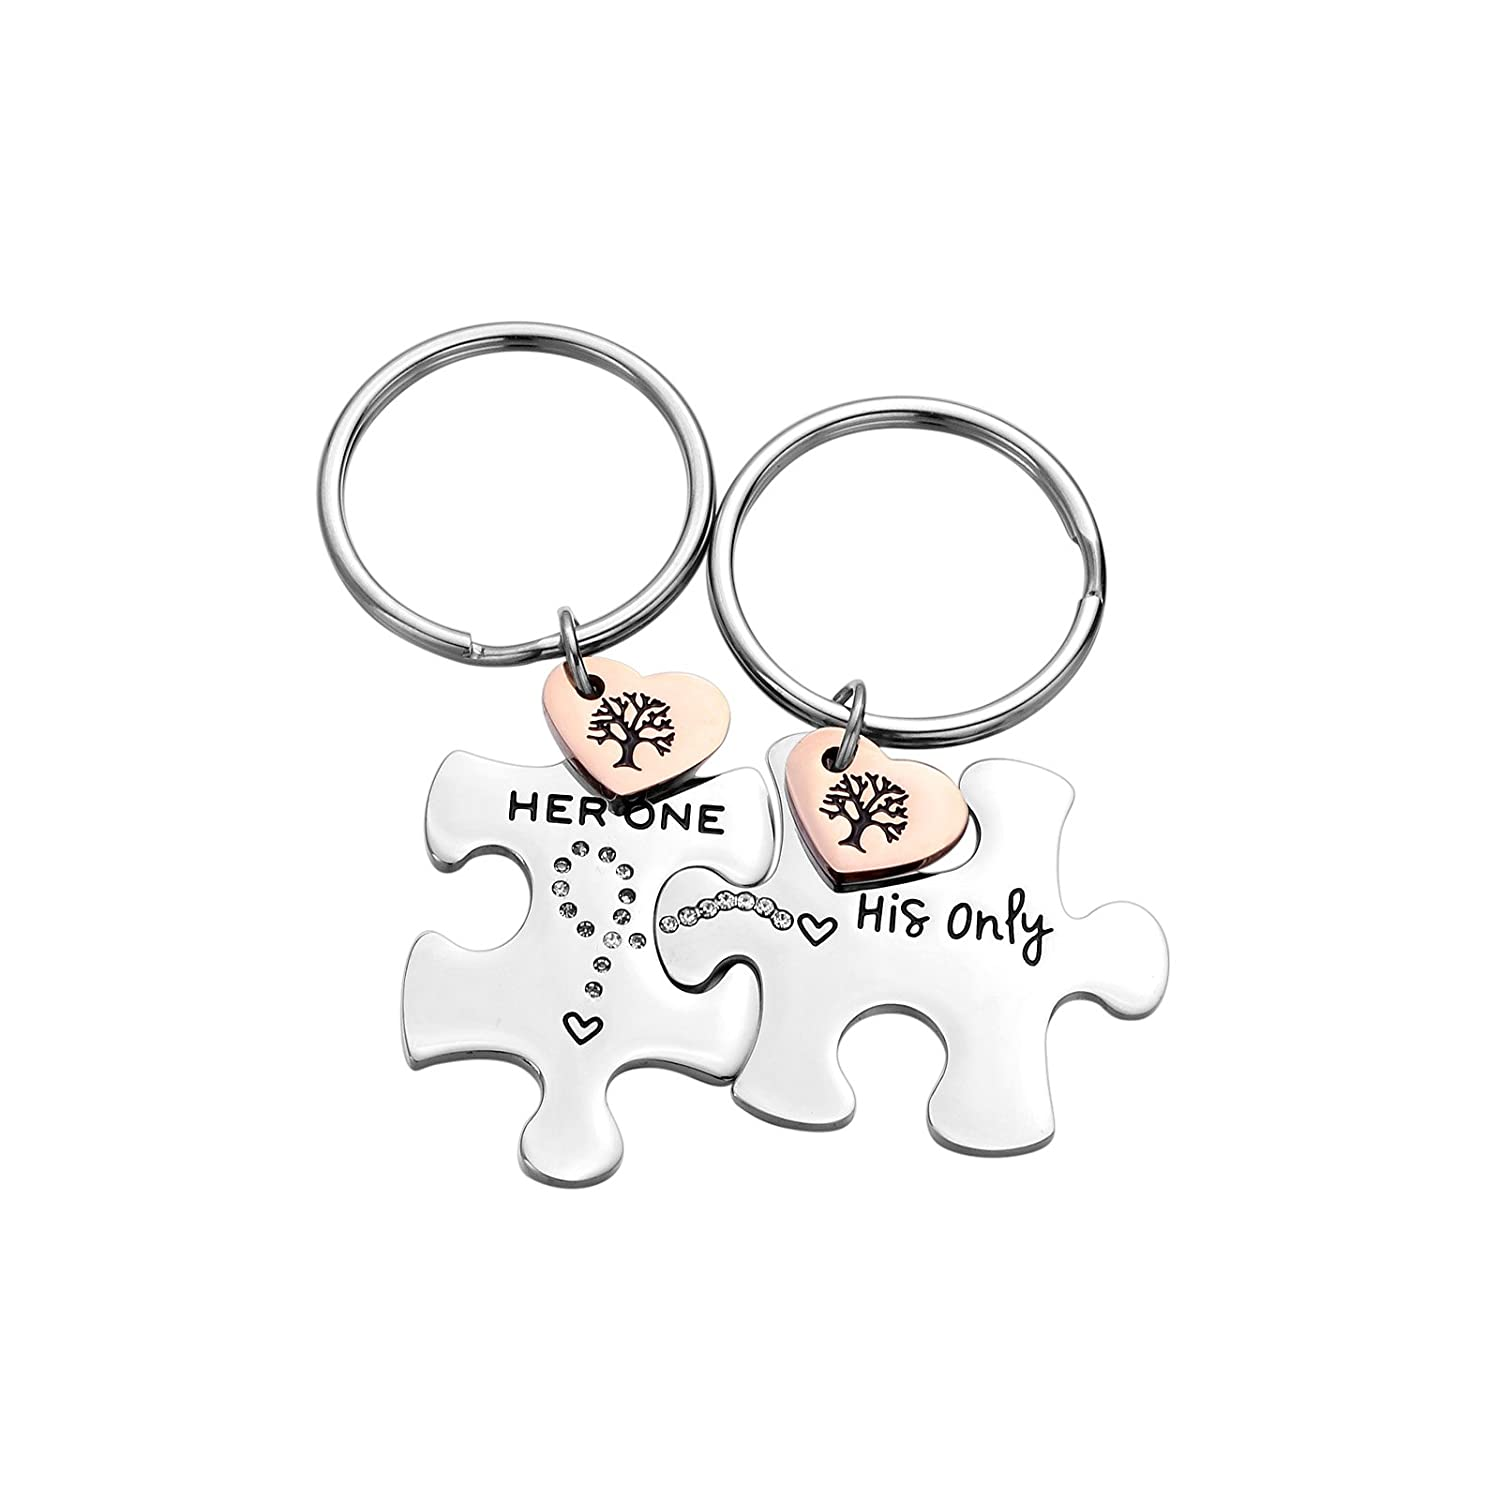 2PC Jewelry Stainless Steel Puzzle Couple Keychain for Him &Her Gift for Girlfriend Boyfriend Best Friend (her one his only)